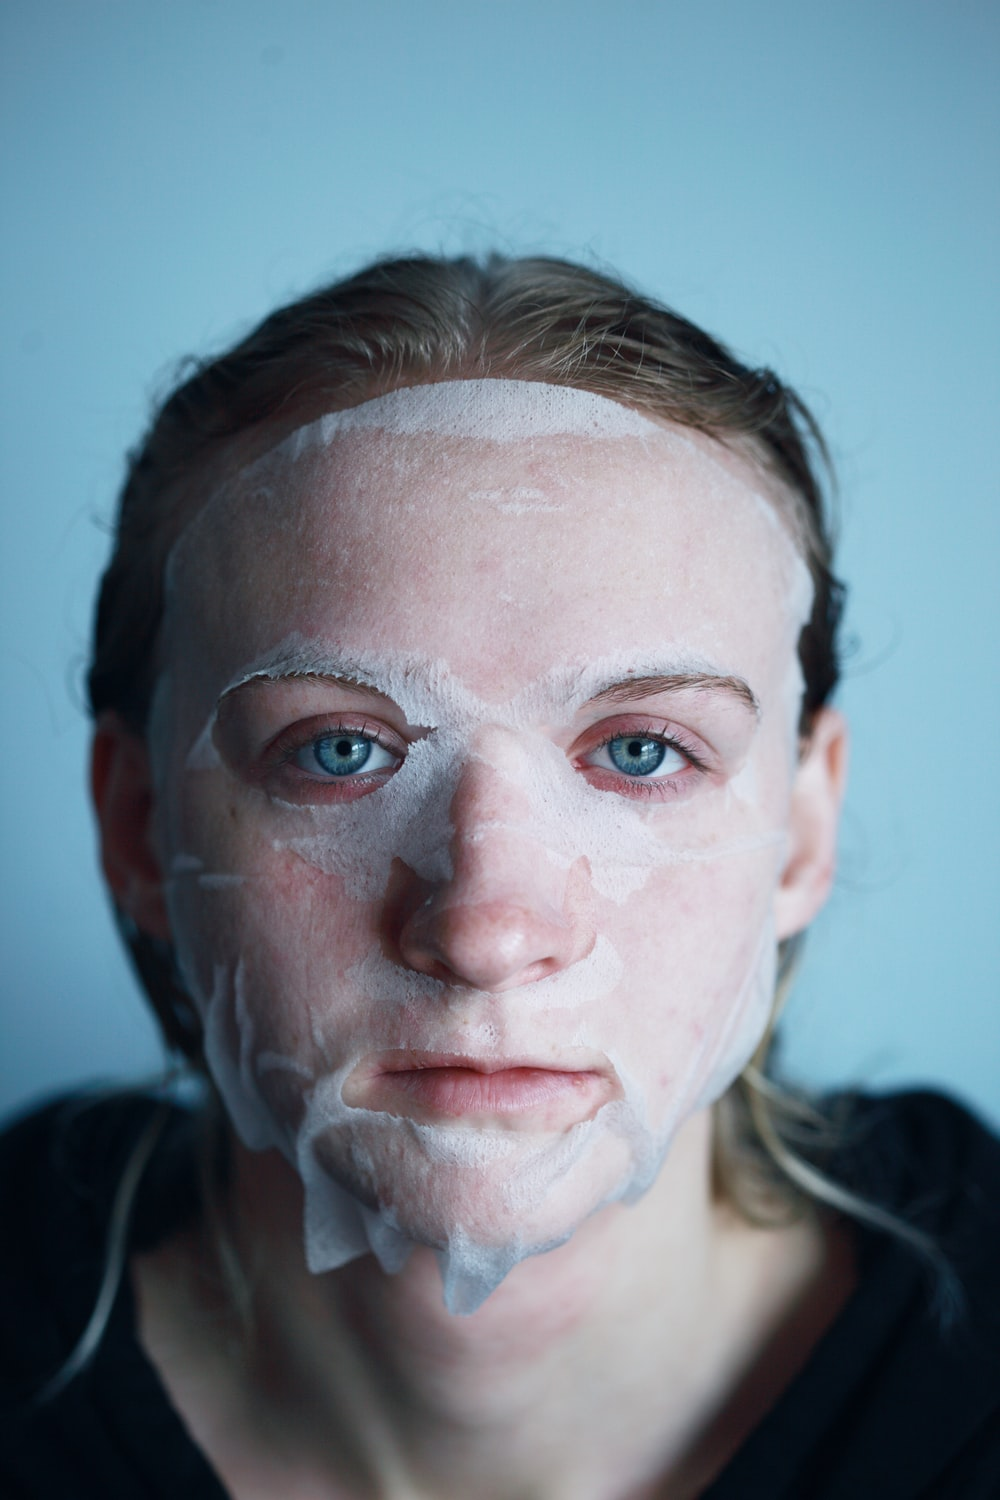 man with white powder on face